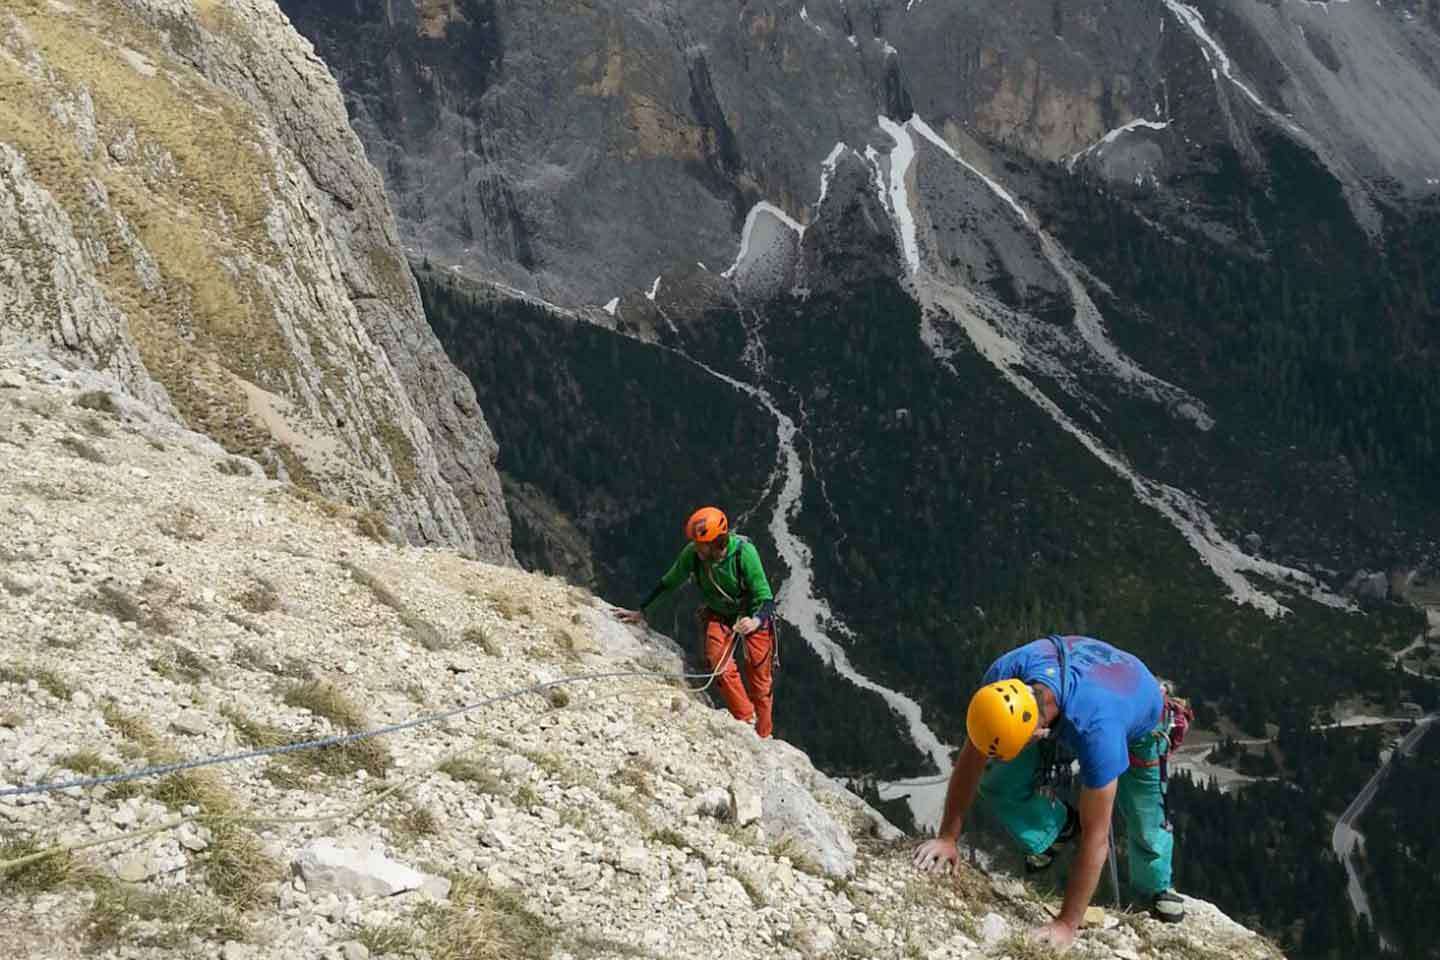 Schubert Climbing Route to Piz Ciavazes in the Sella Group